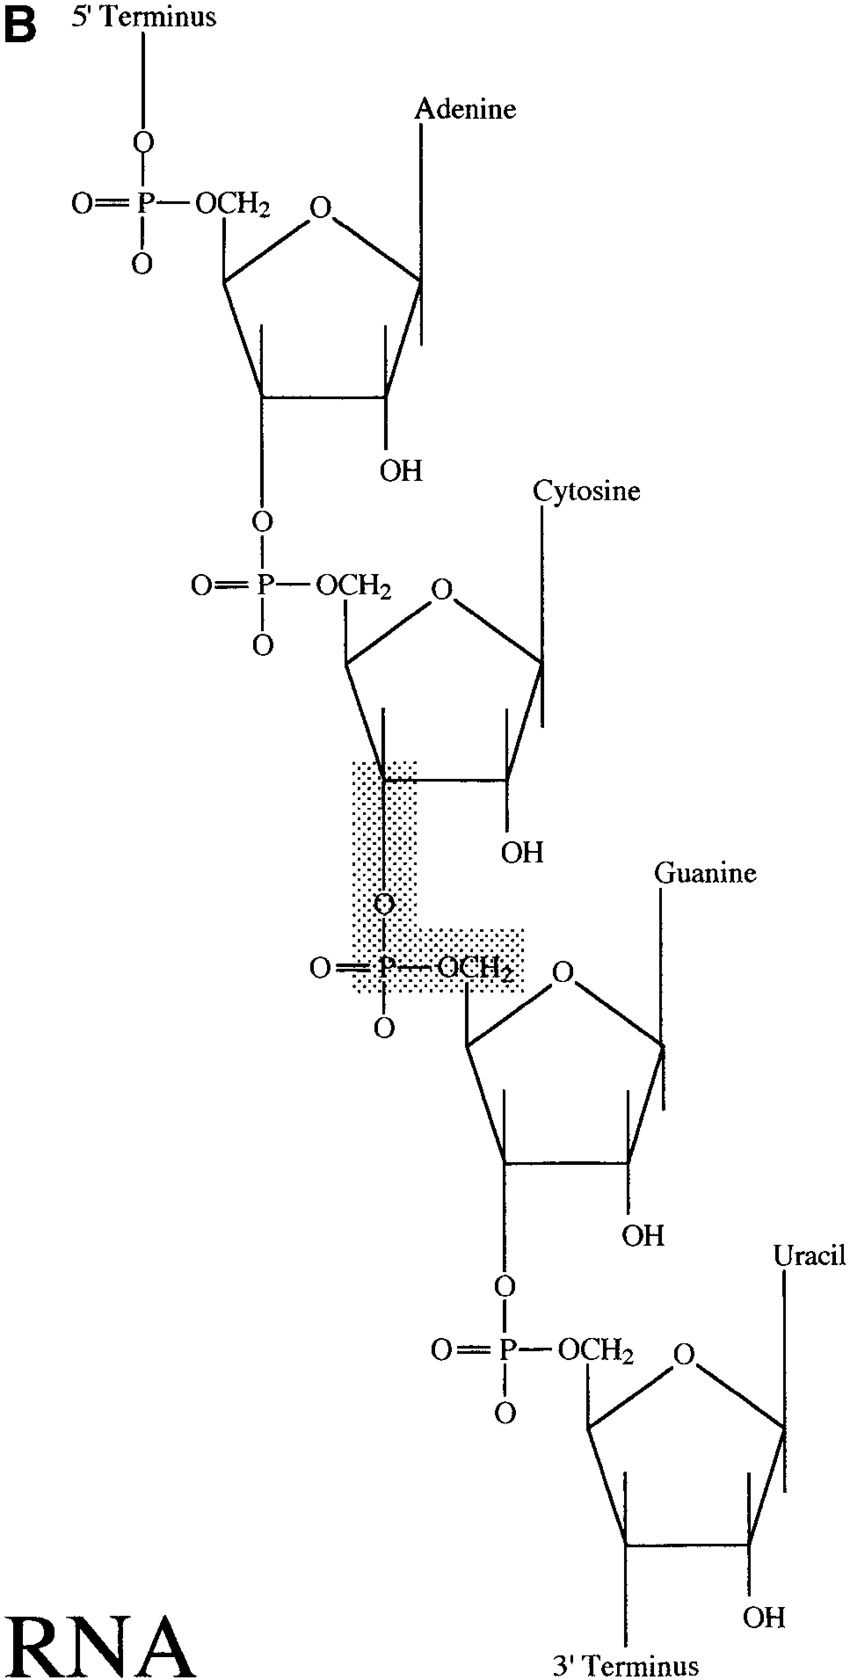 The chemical structure of repeating nucleotide subunits in